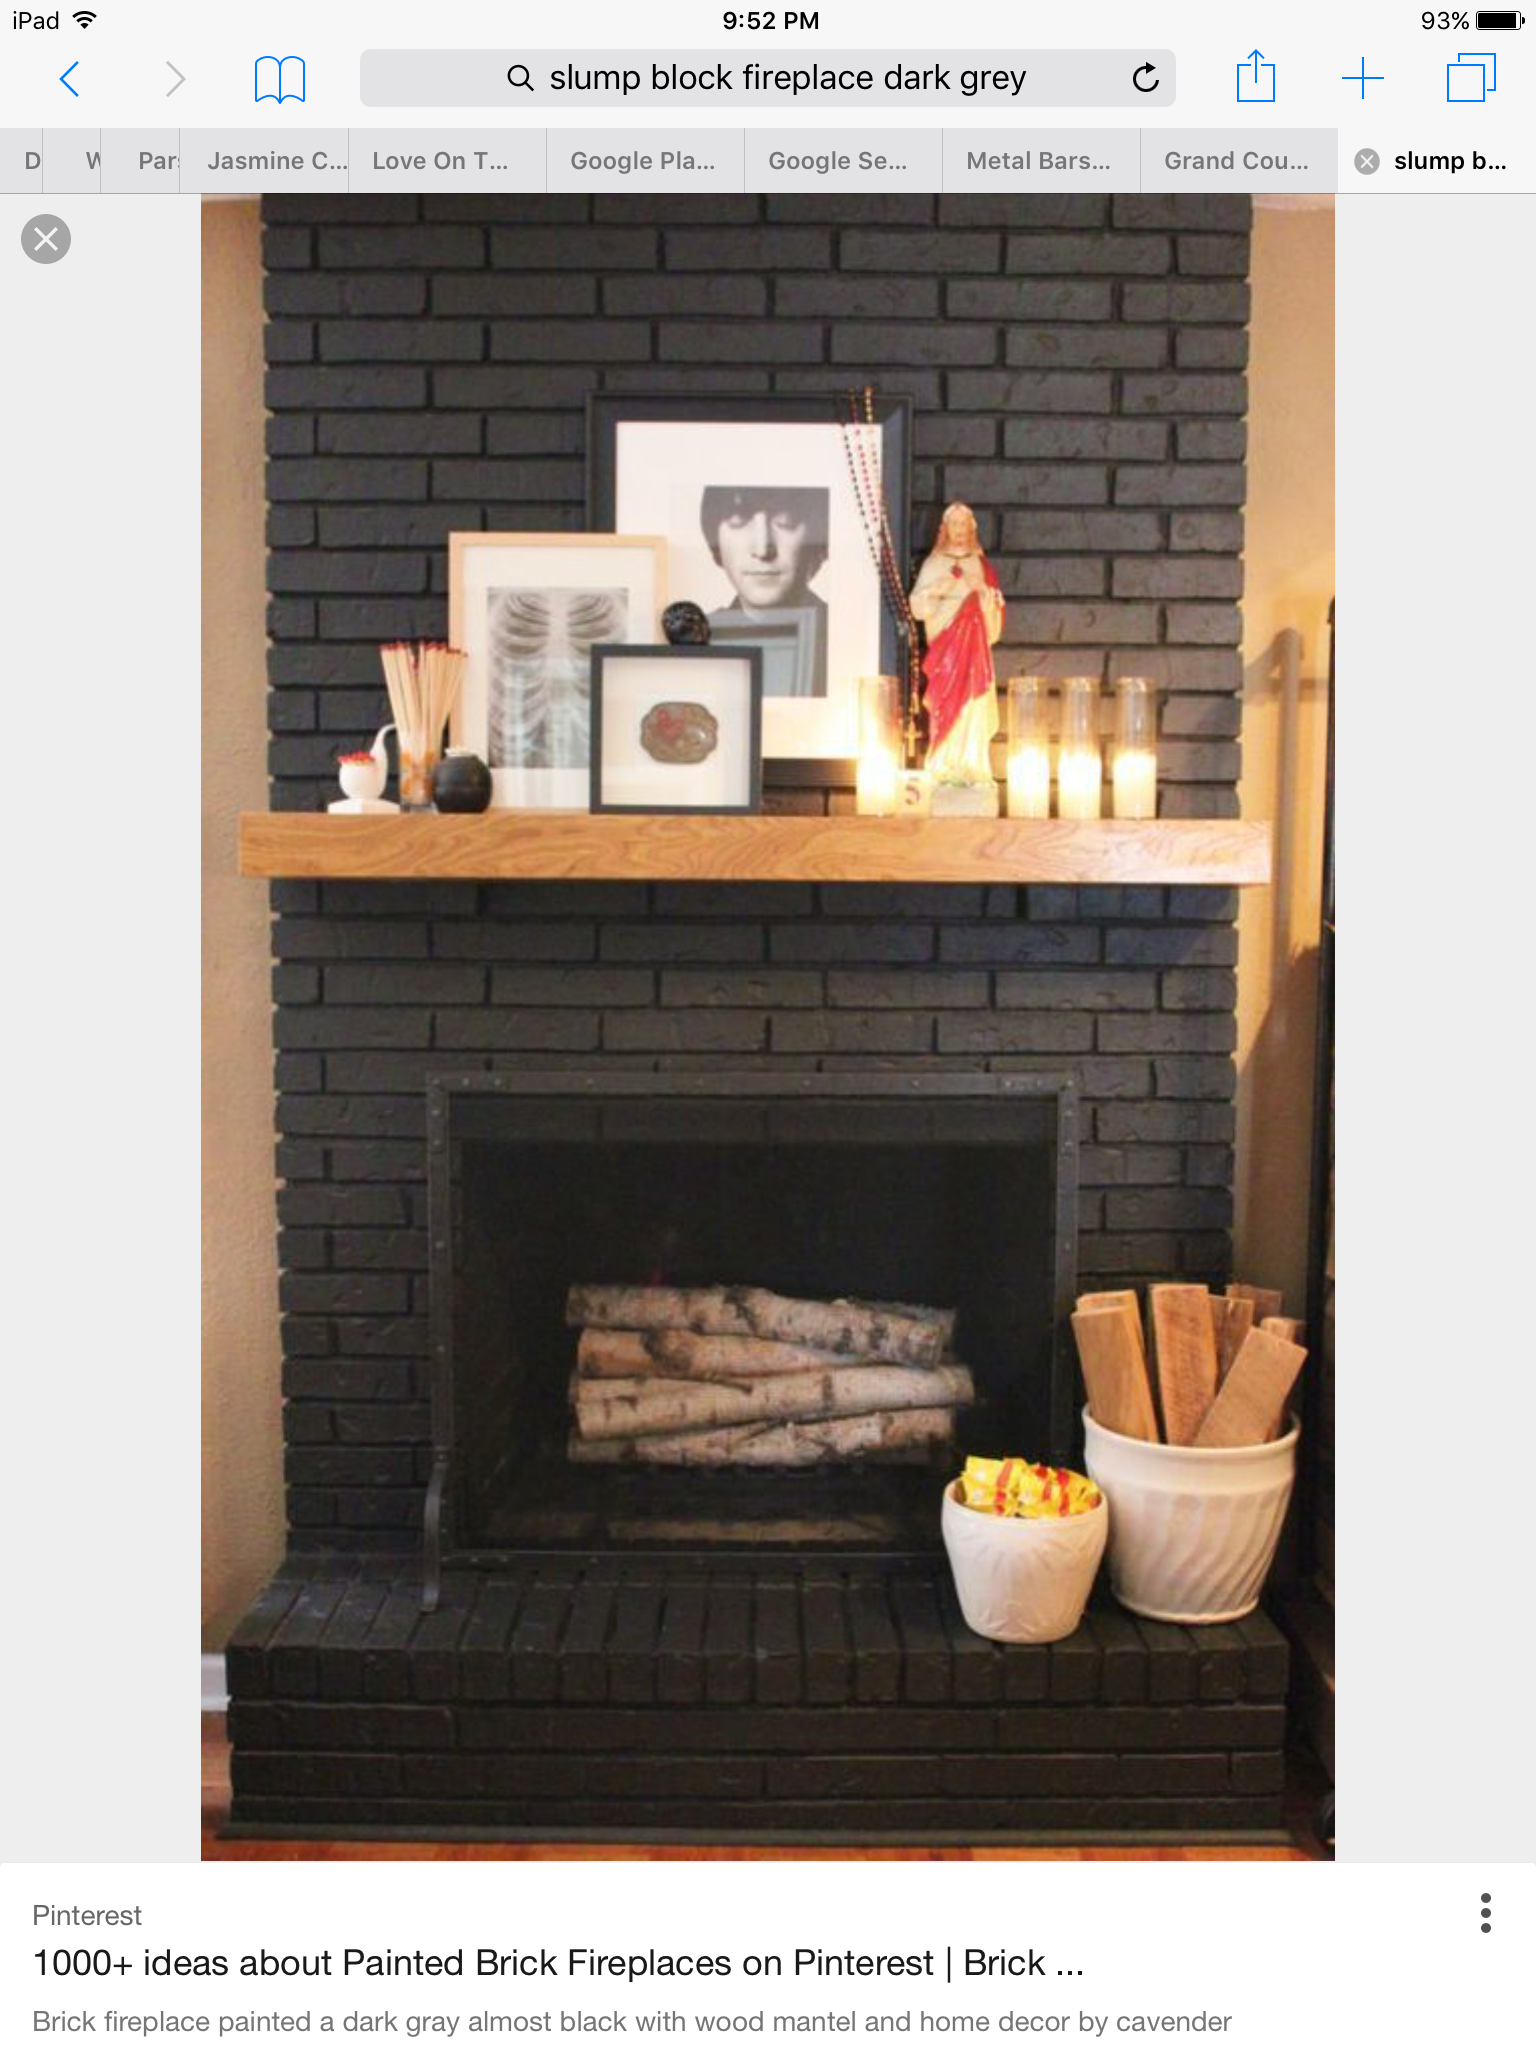 Grey Slump Block Fireplace